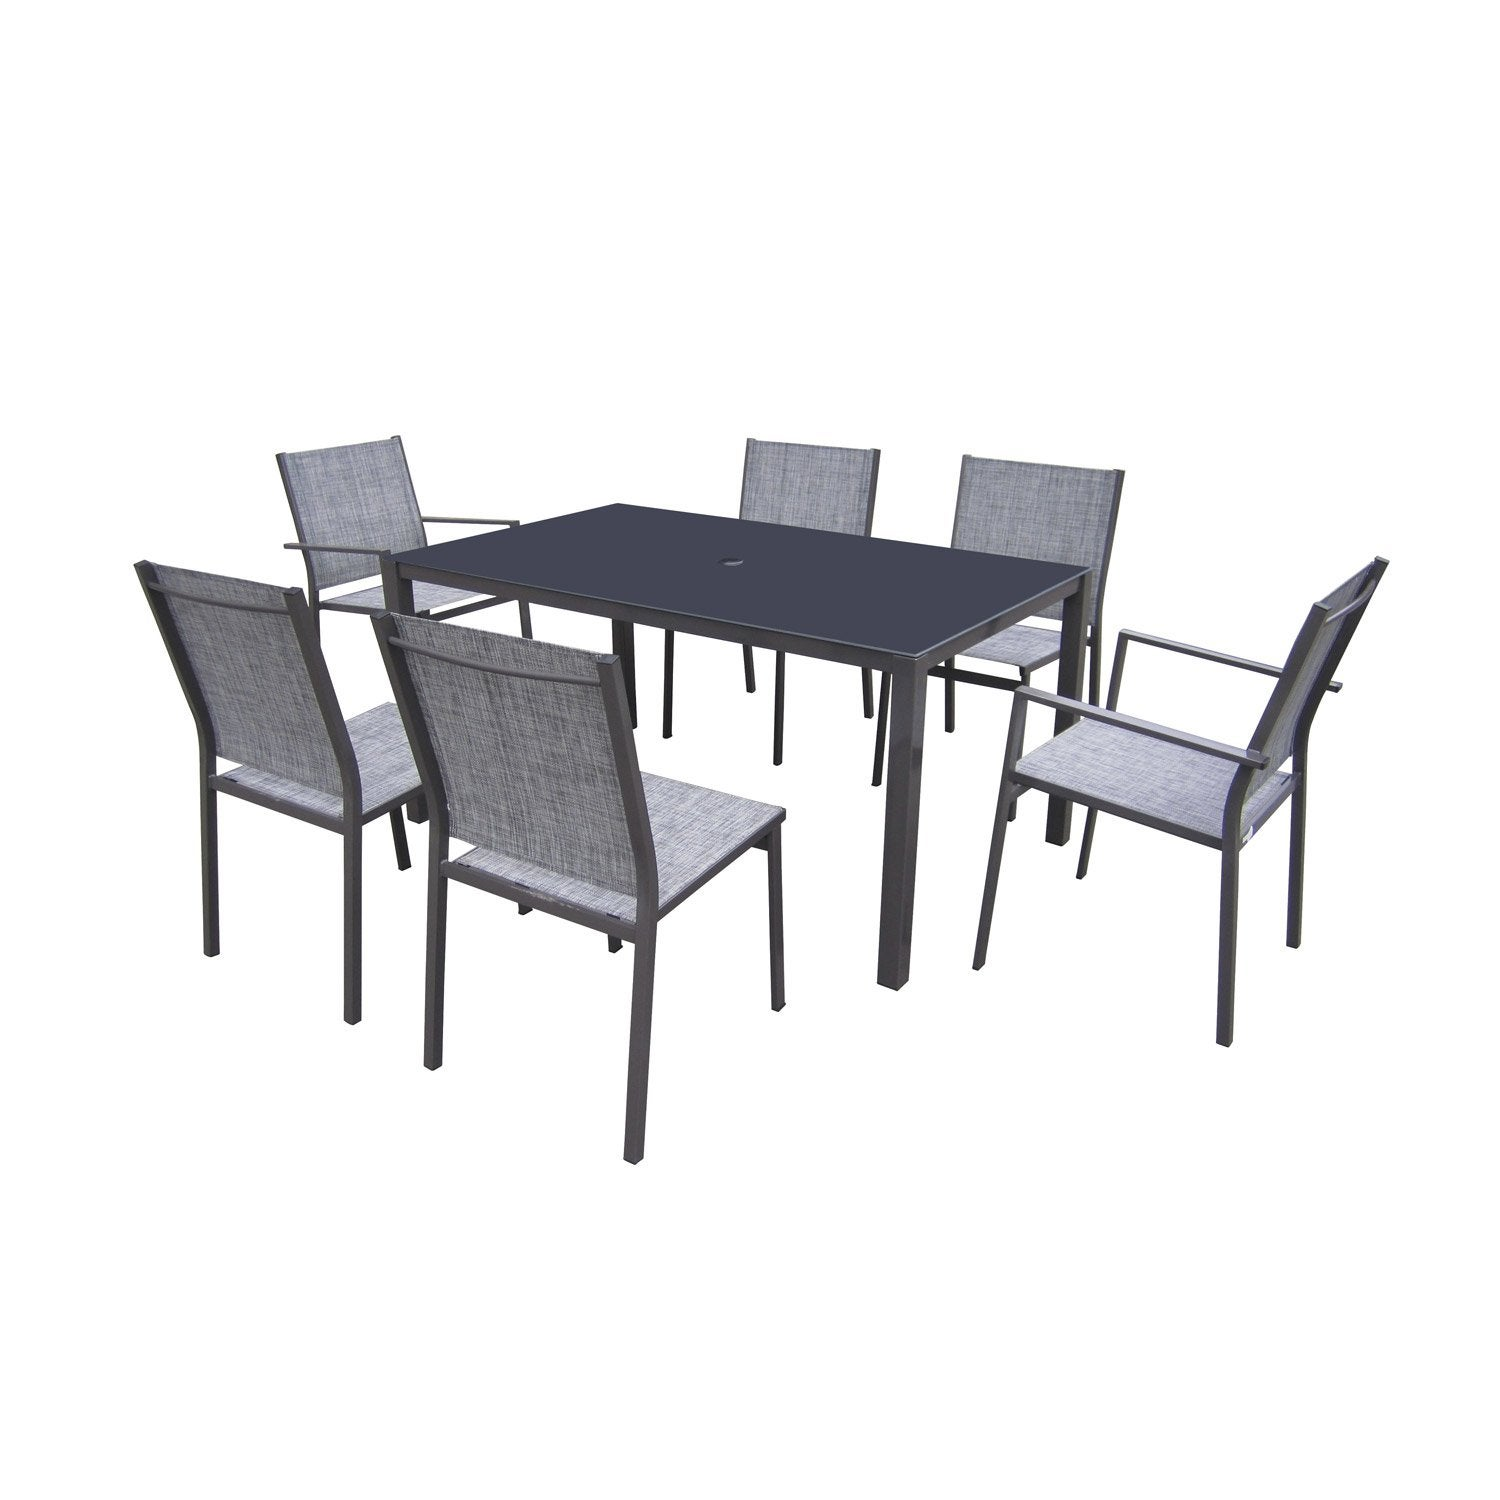 salon de jardin denver acier gris anthracite 1 table 4. Black Bedroom Furniture Sets. Home Design Ideas